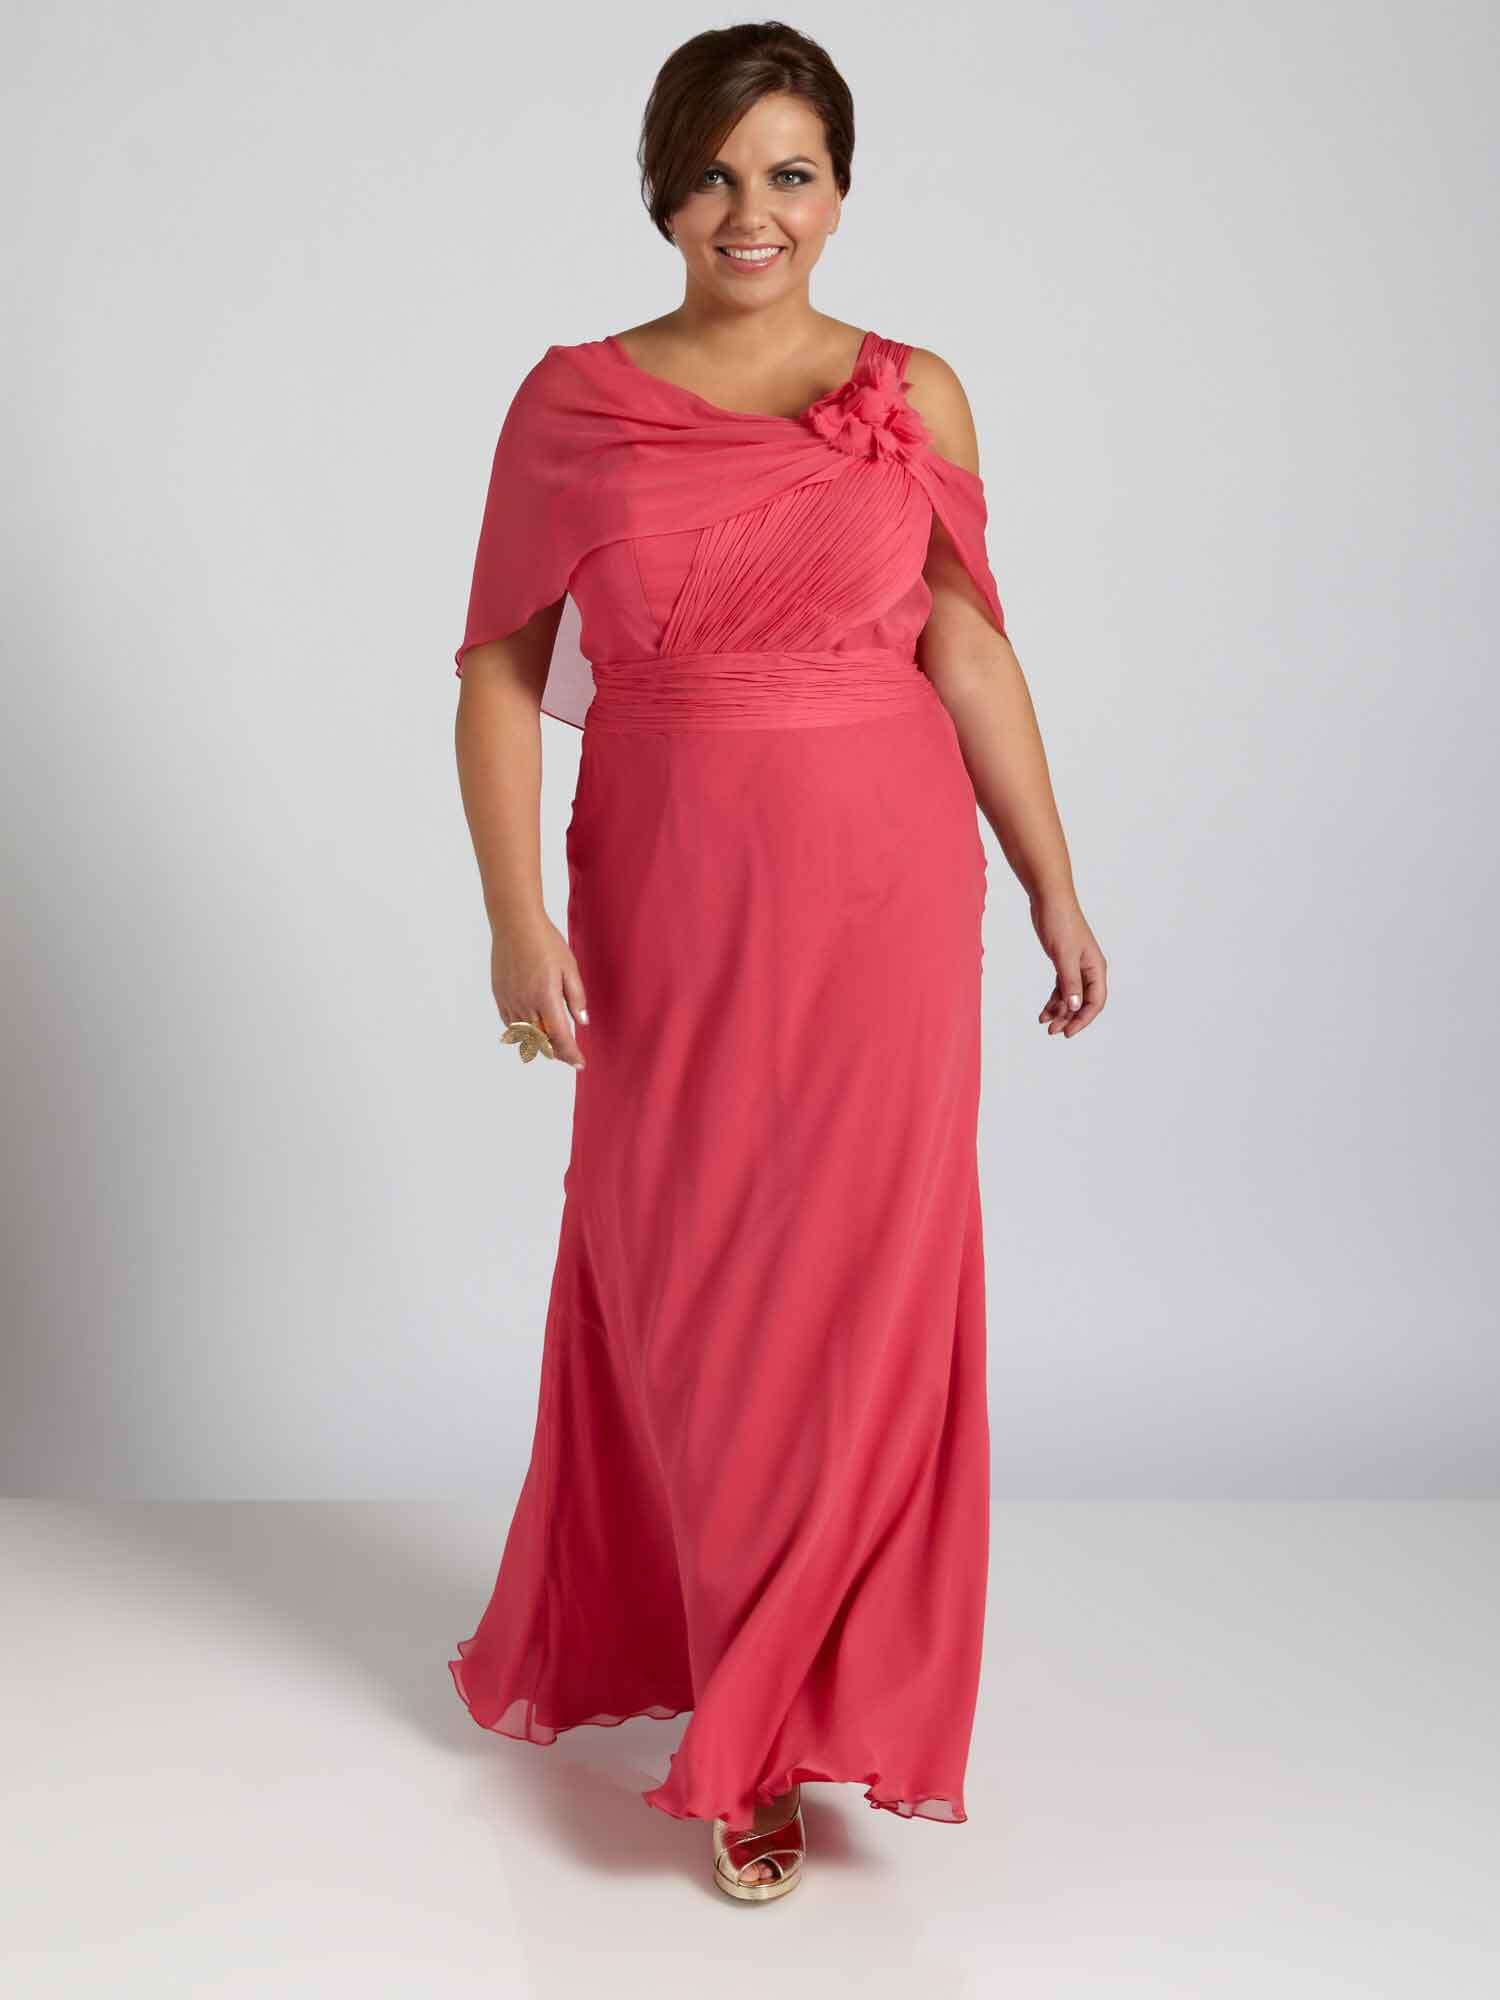 buy Cocktail Dress dresse plus size